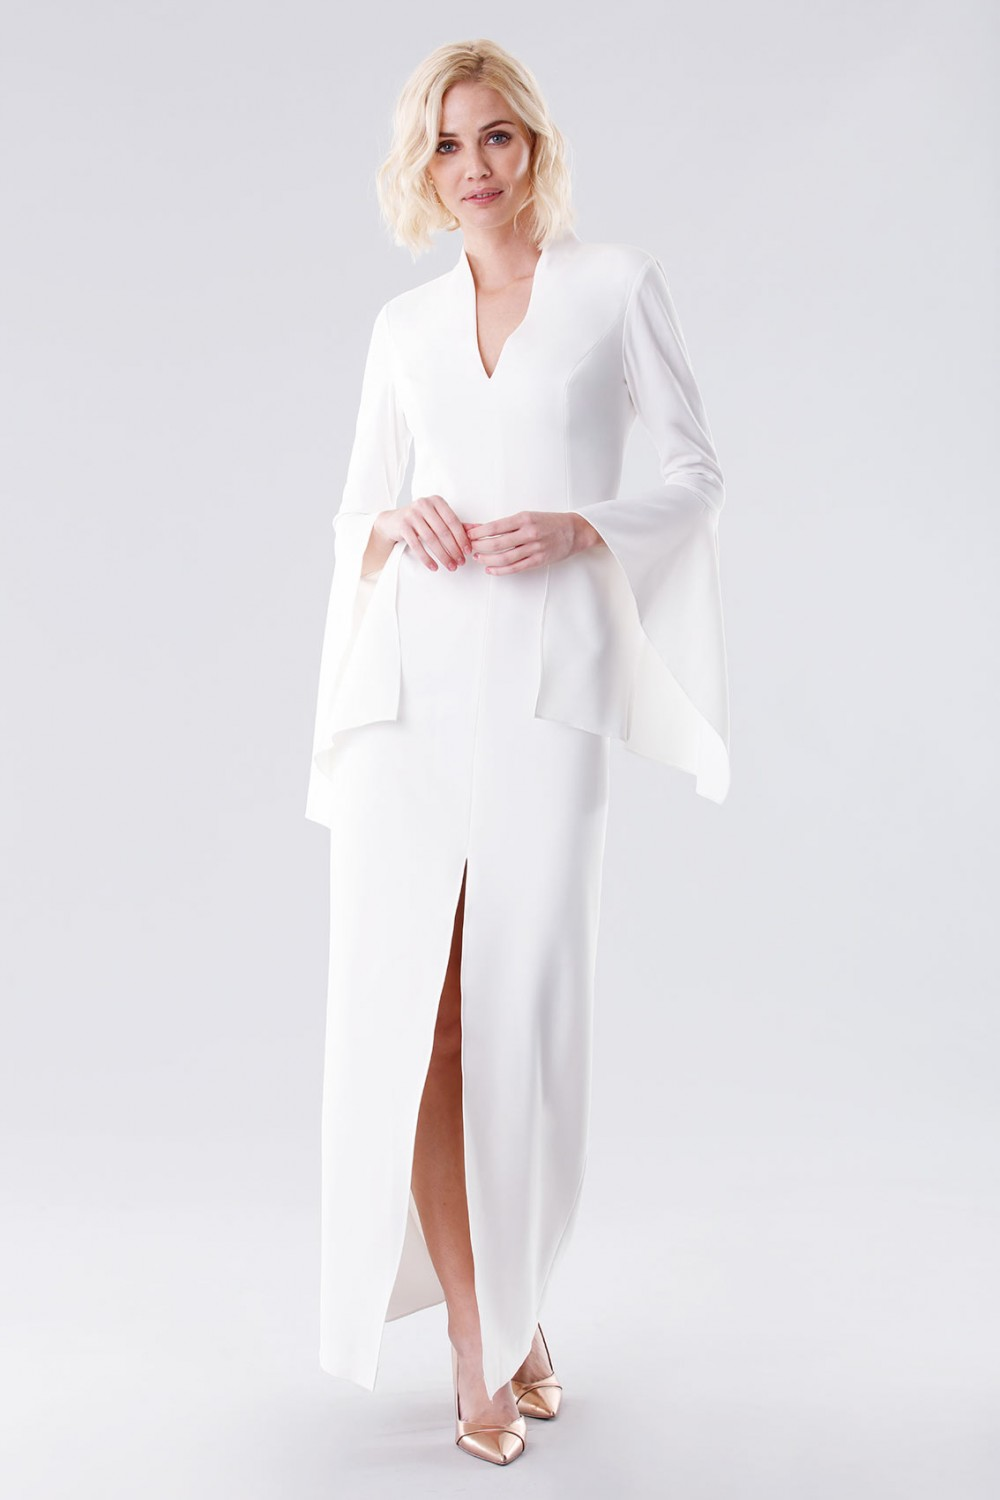 White dress with open bell sleeves